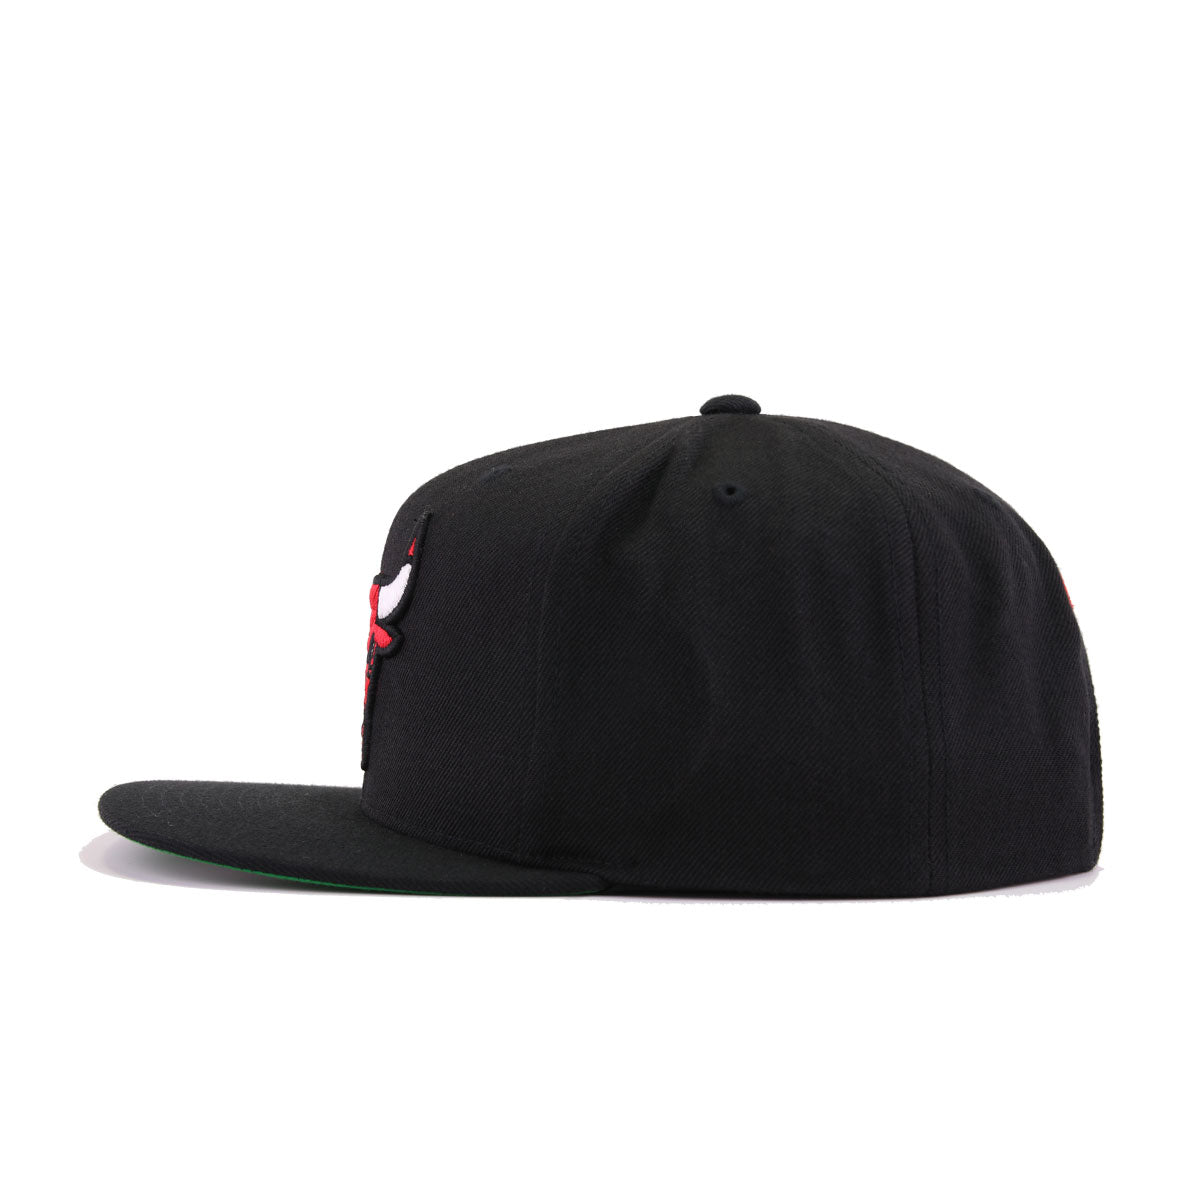 Chicago Bulls Black Mitchell and Ness Snapback